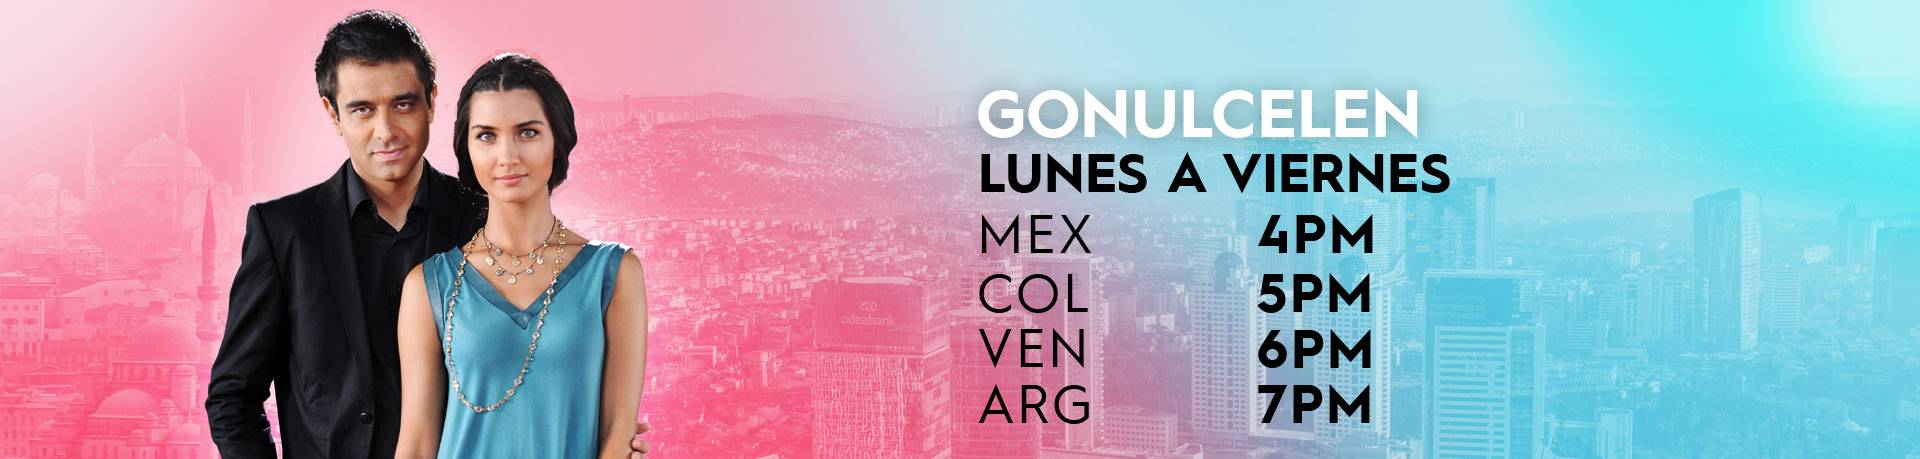 banners_pasiones_latam_gonulcelen_1920x459_main_25oct